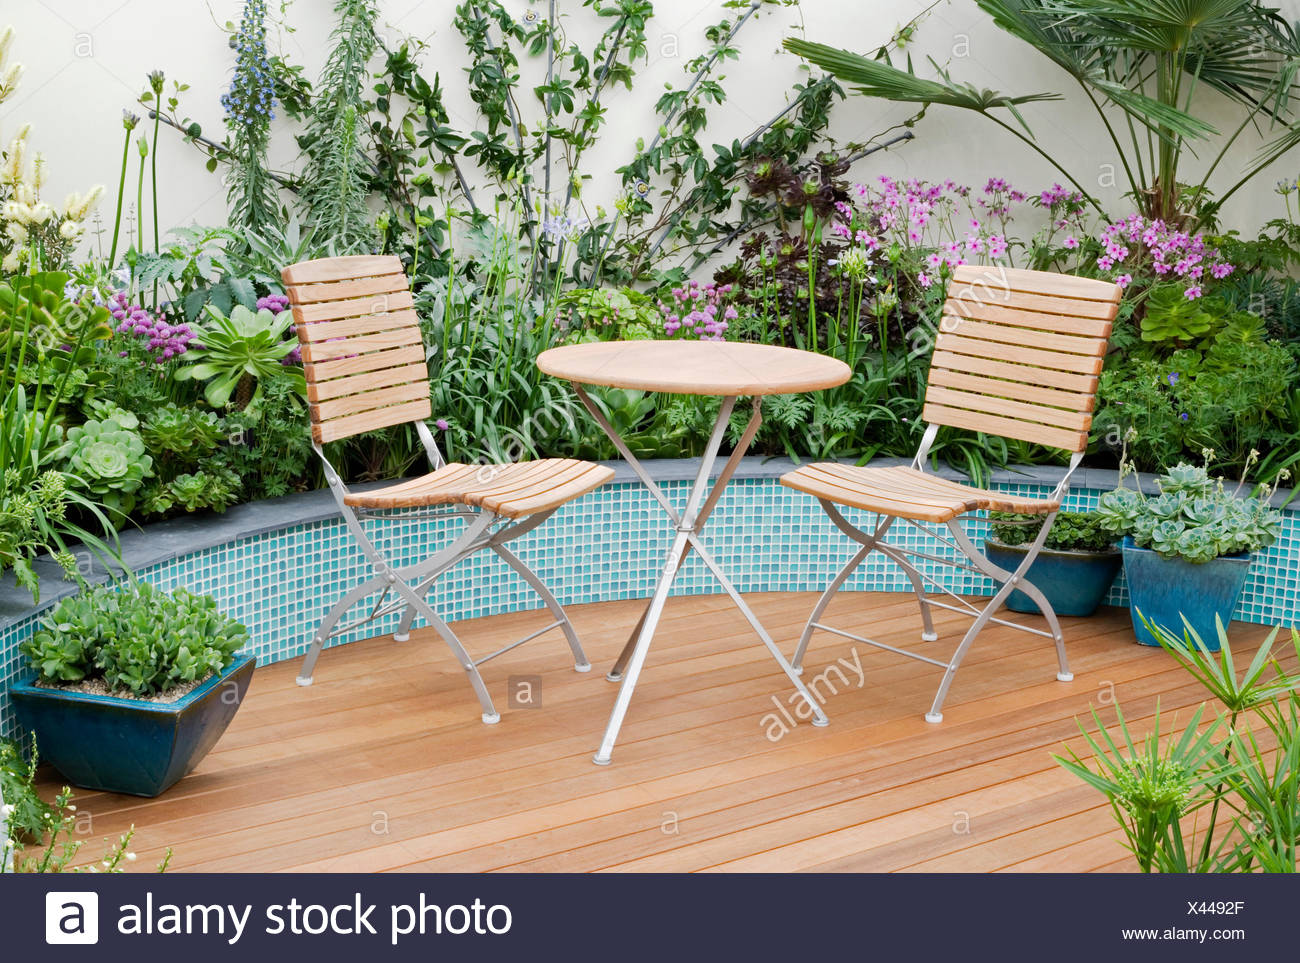 TABLE & CHAIRS ON DECKING WITH CERAMIC TILE RAISED BORDERS BEHIND ...